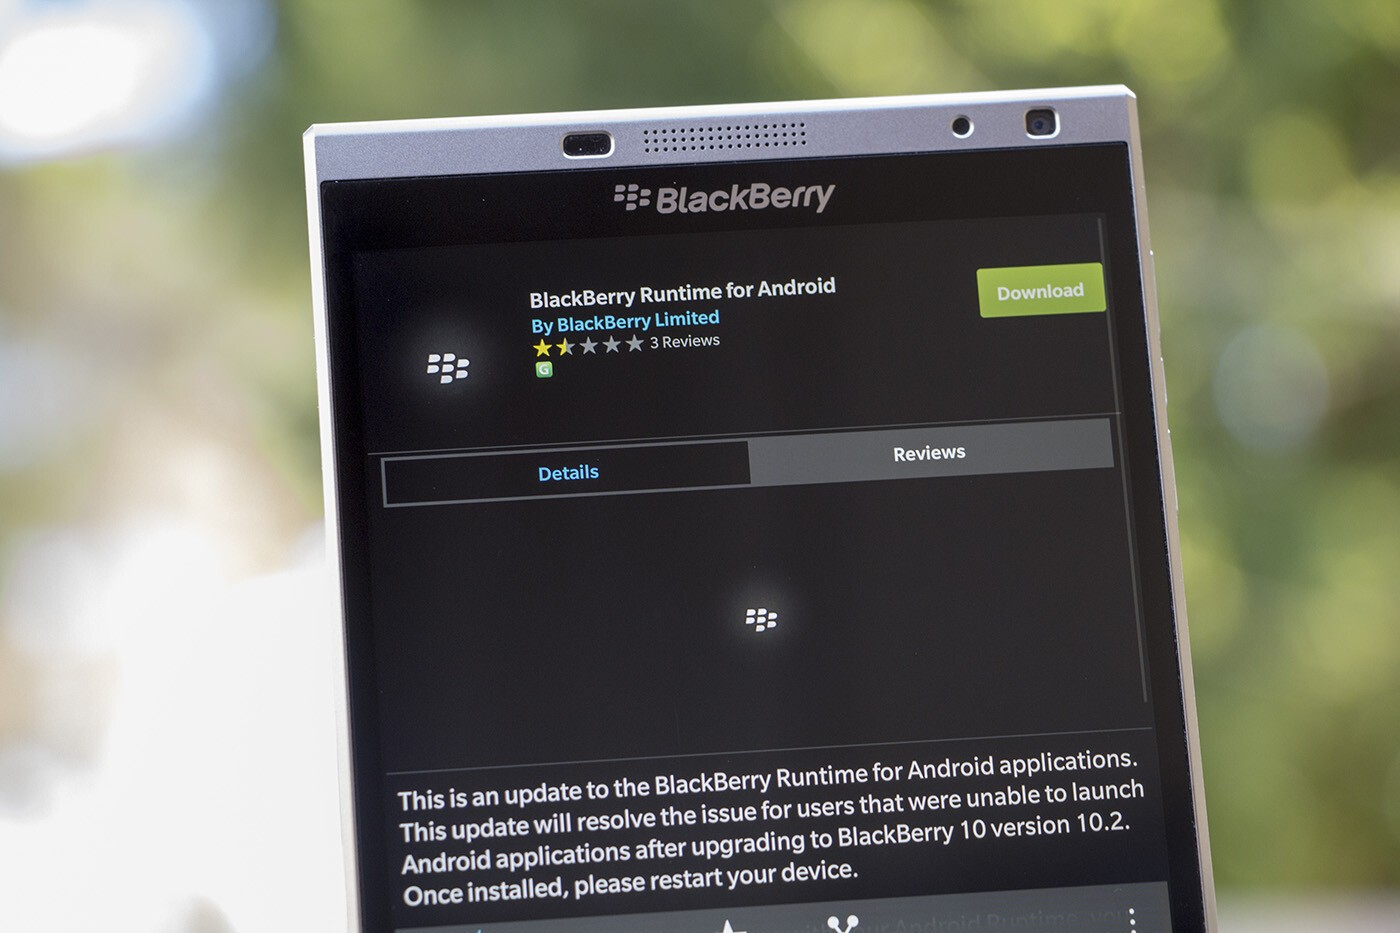 Android Runtime update for BlackBerry 10 now available